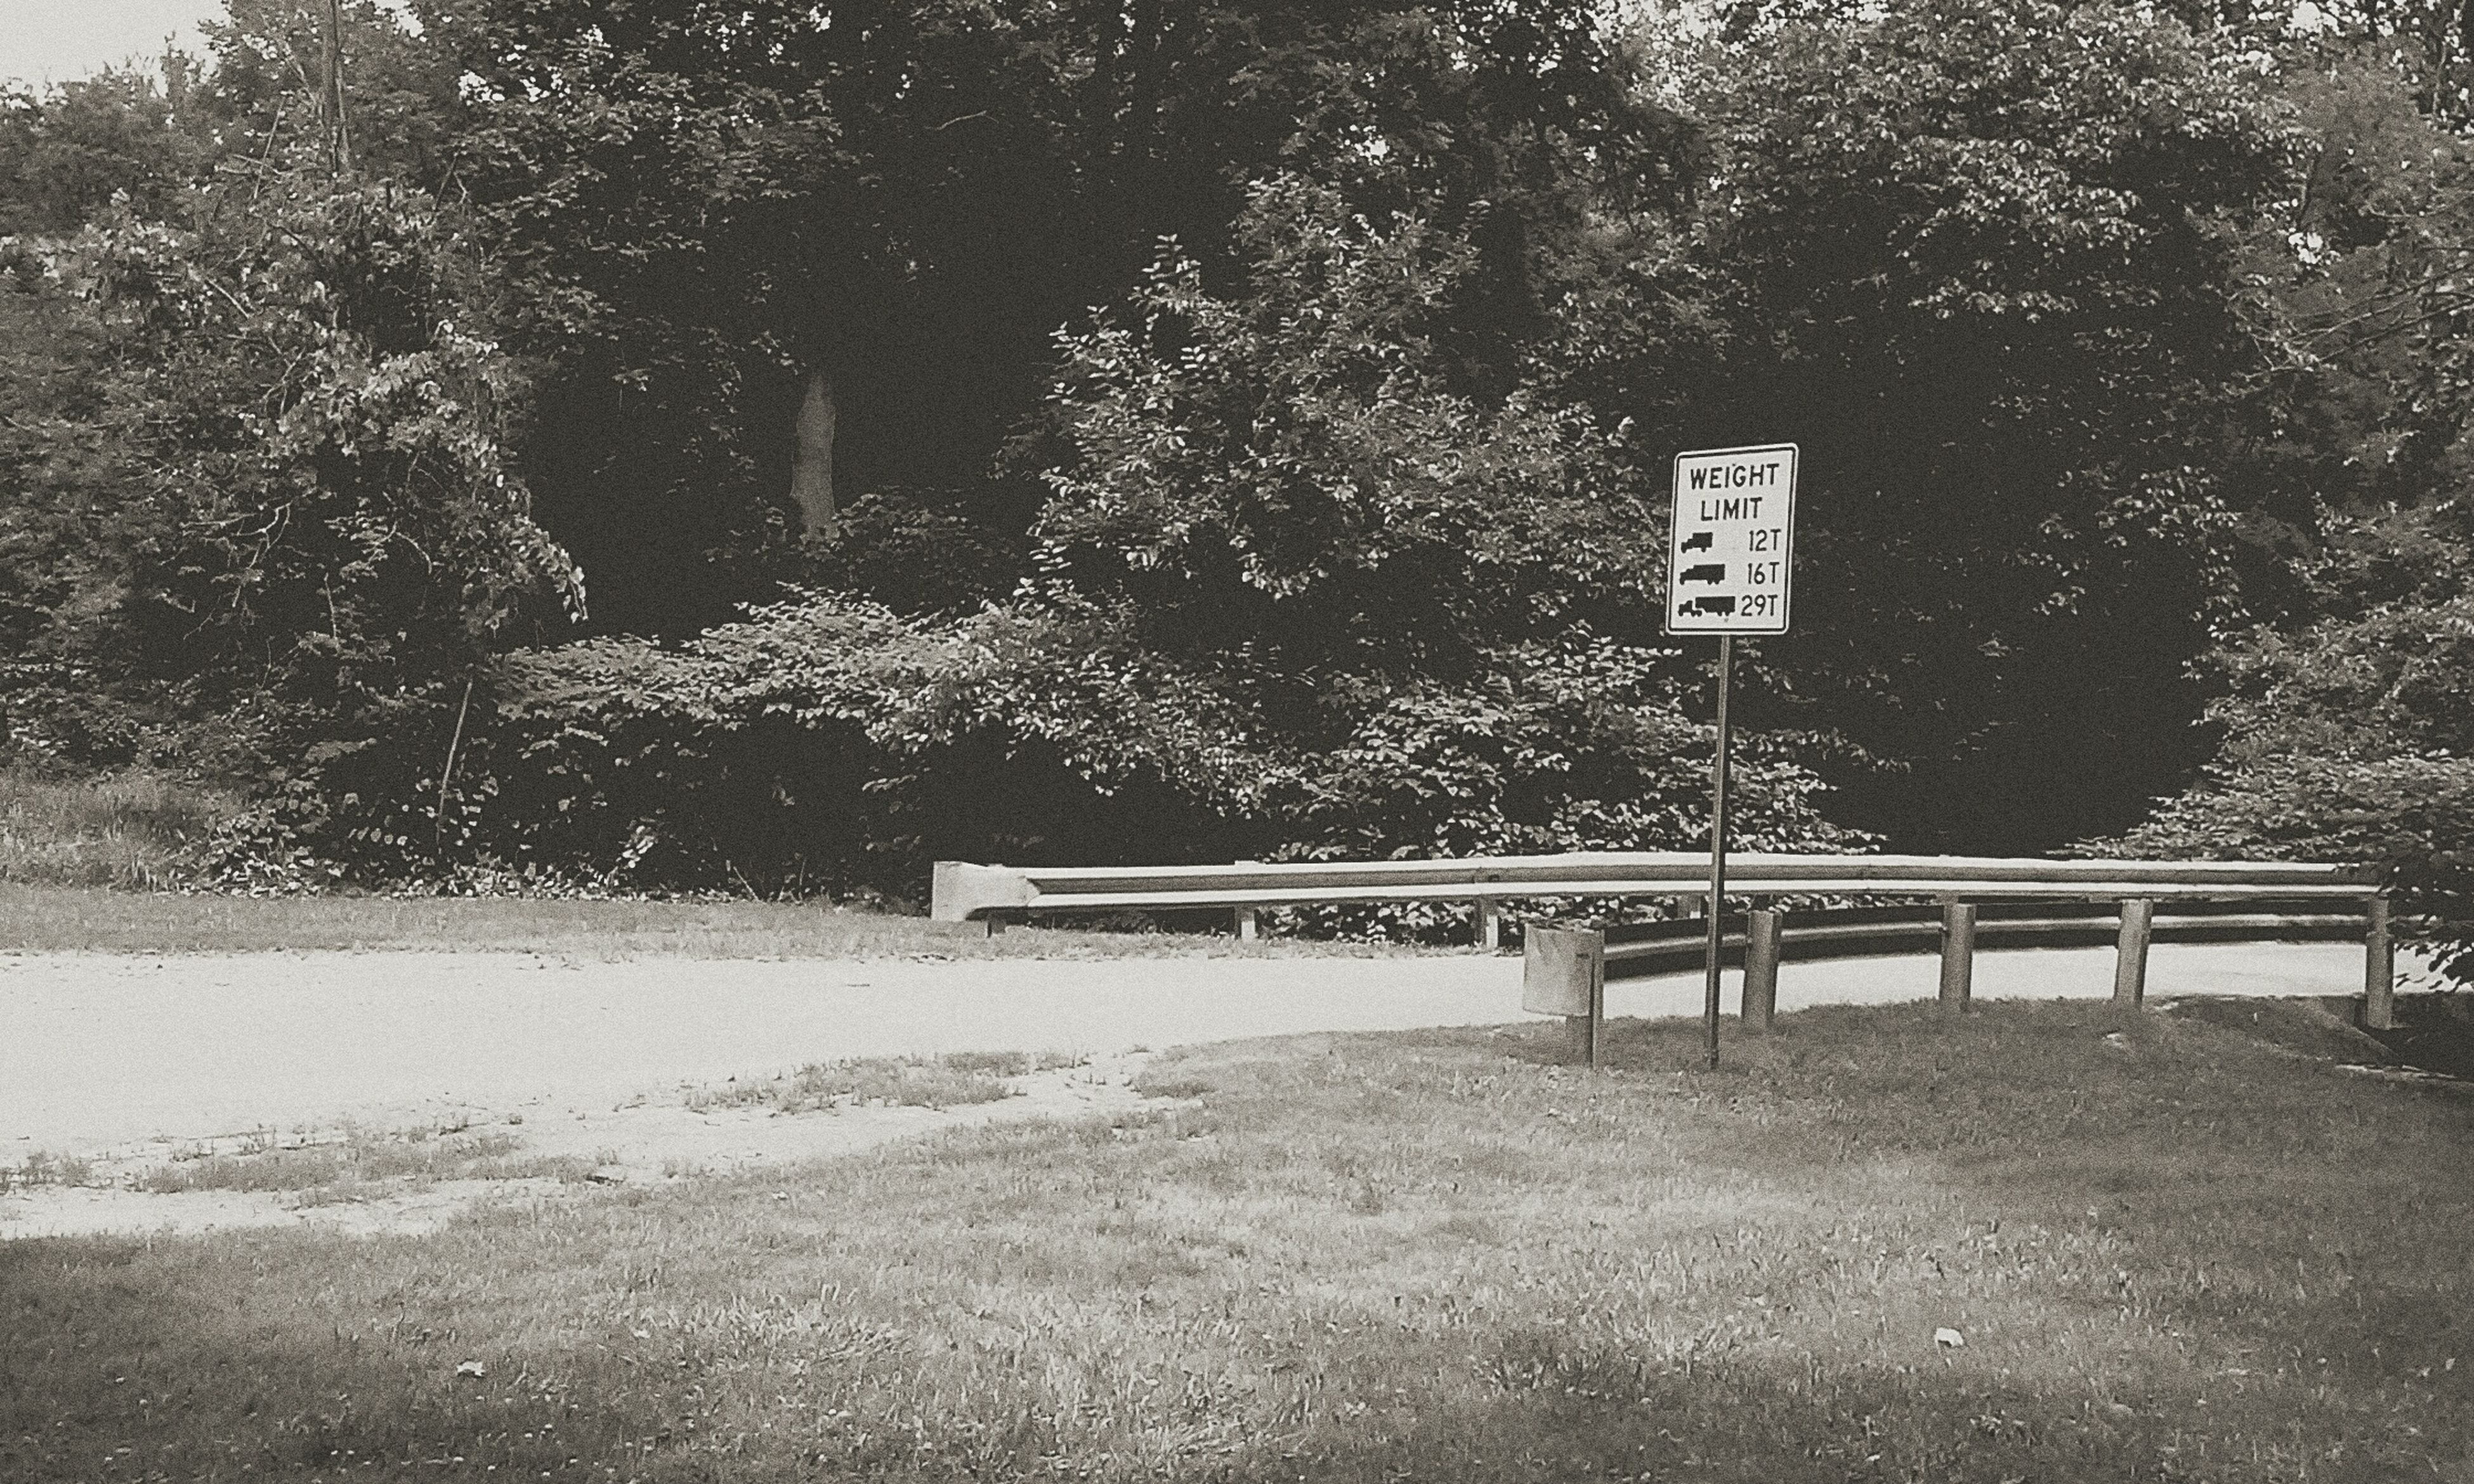 tree, text, western script, communication, information sign, sign, growth, nature, road sign, tranquility, day, guidance, bench, empty, outdoors, no people, road, railing, branch, information